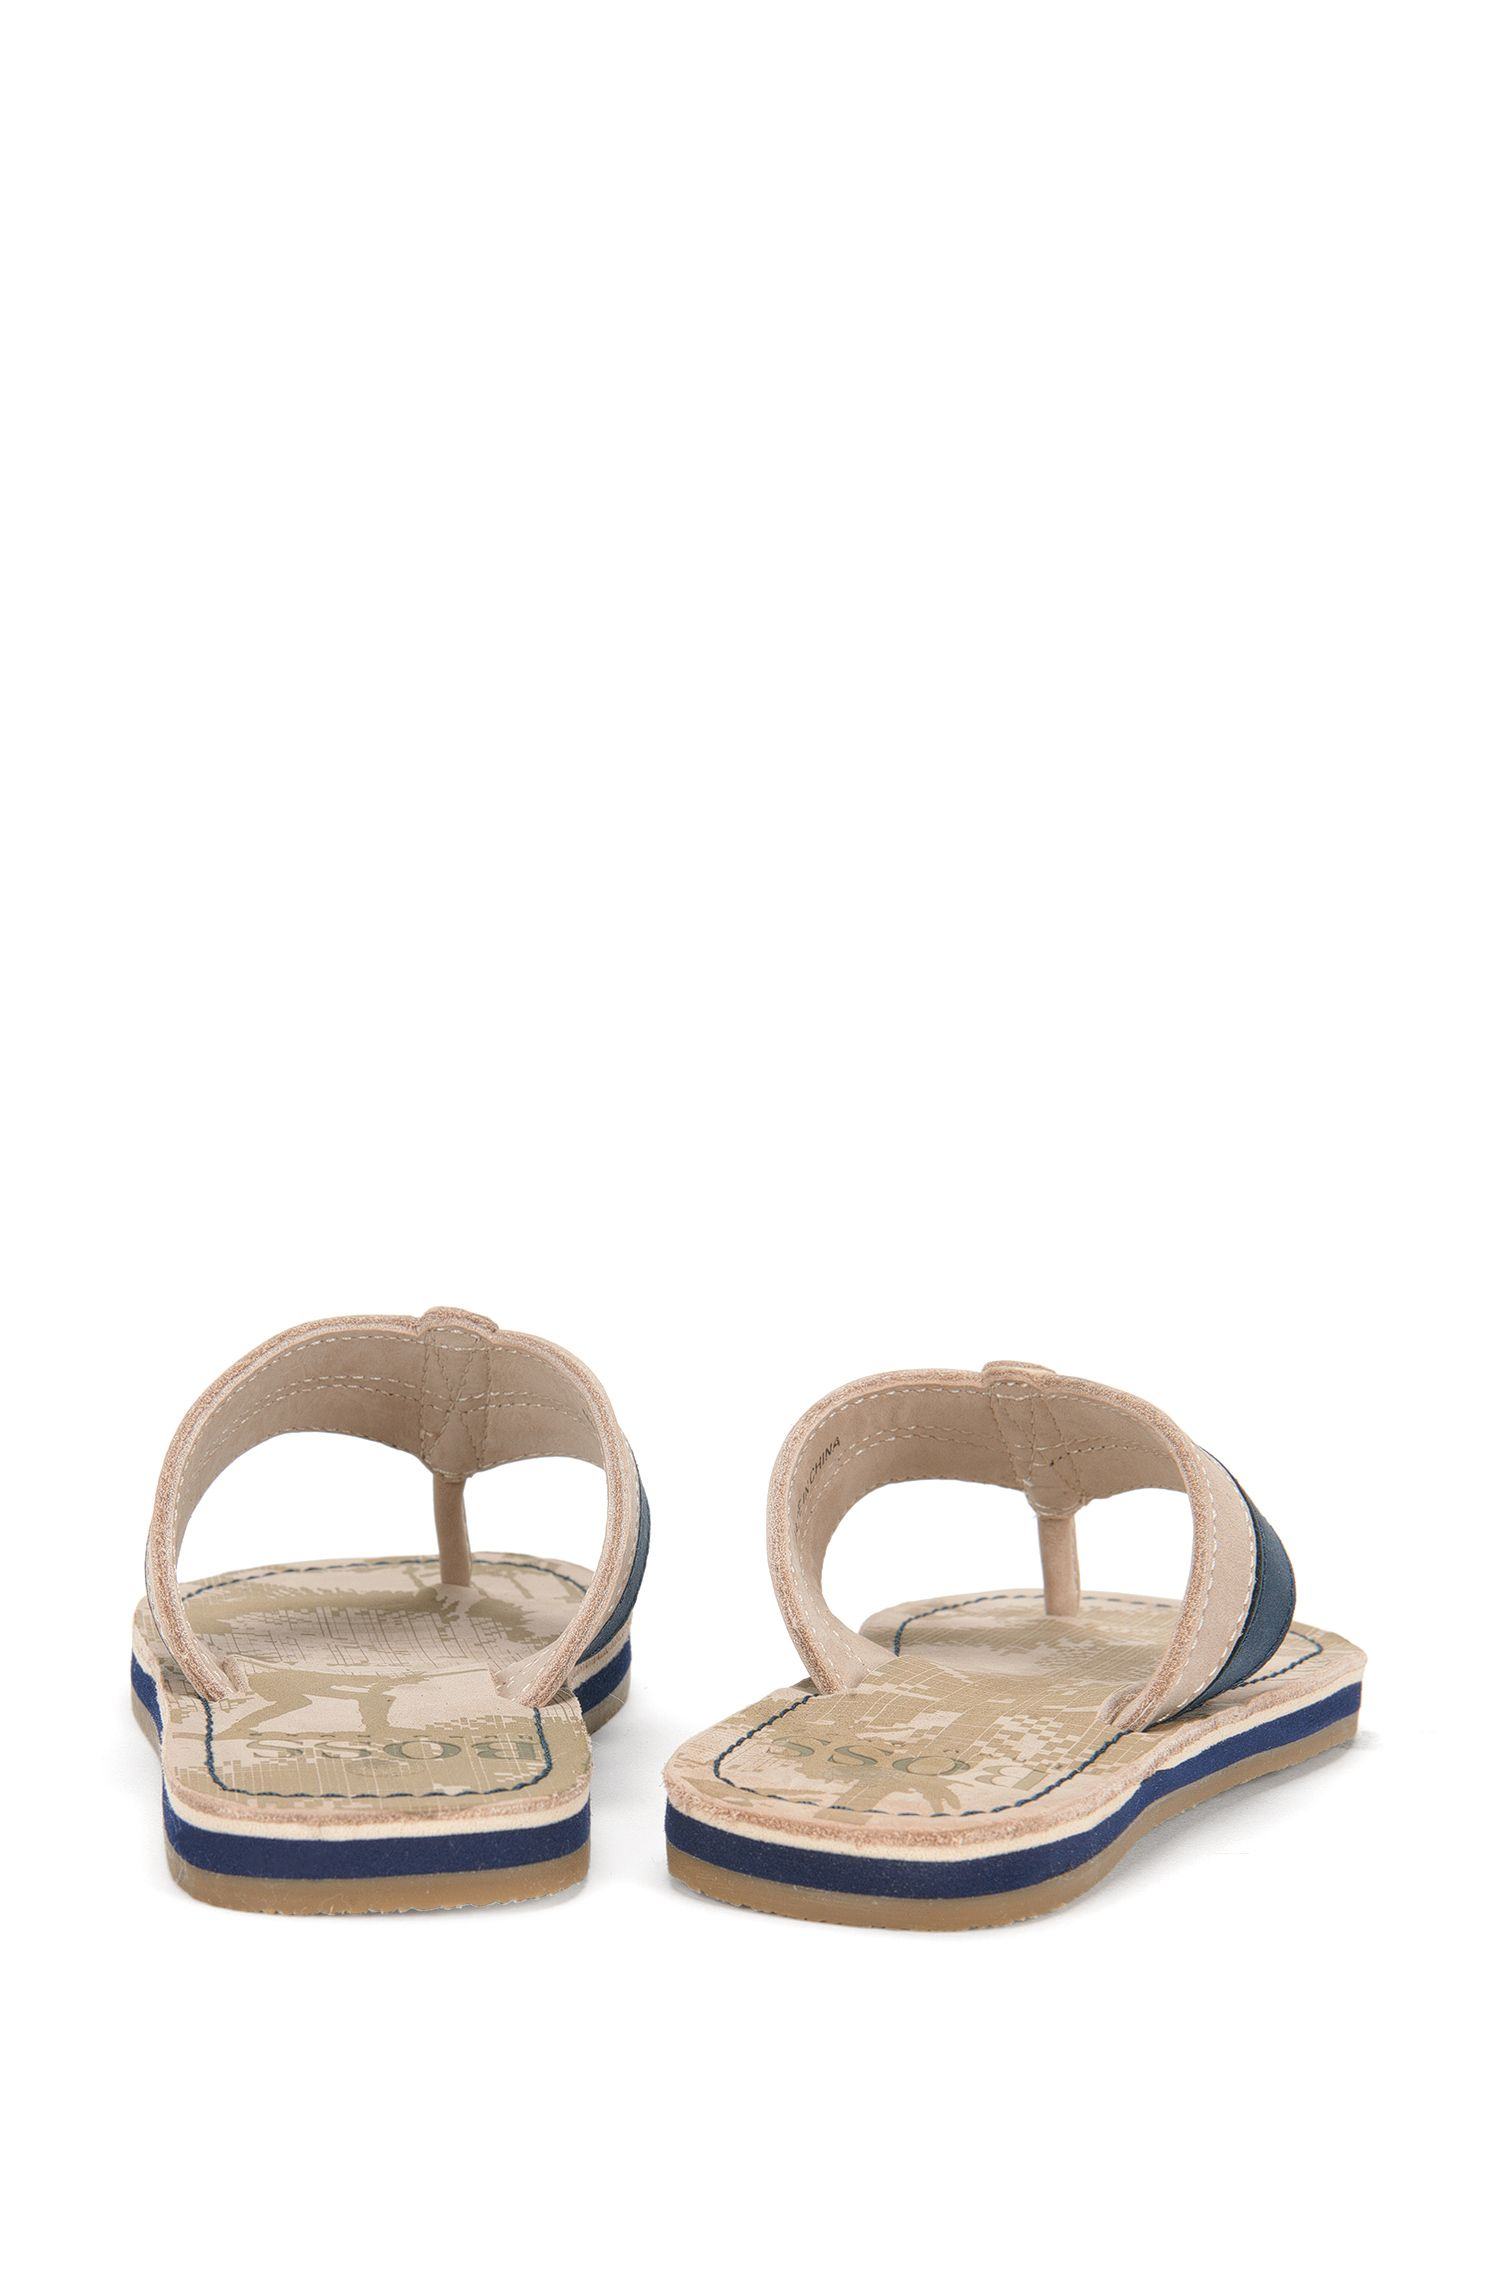 Printed kids' toe-separator sandals in leather: 'J29111'